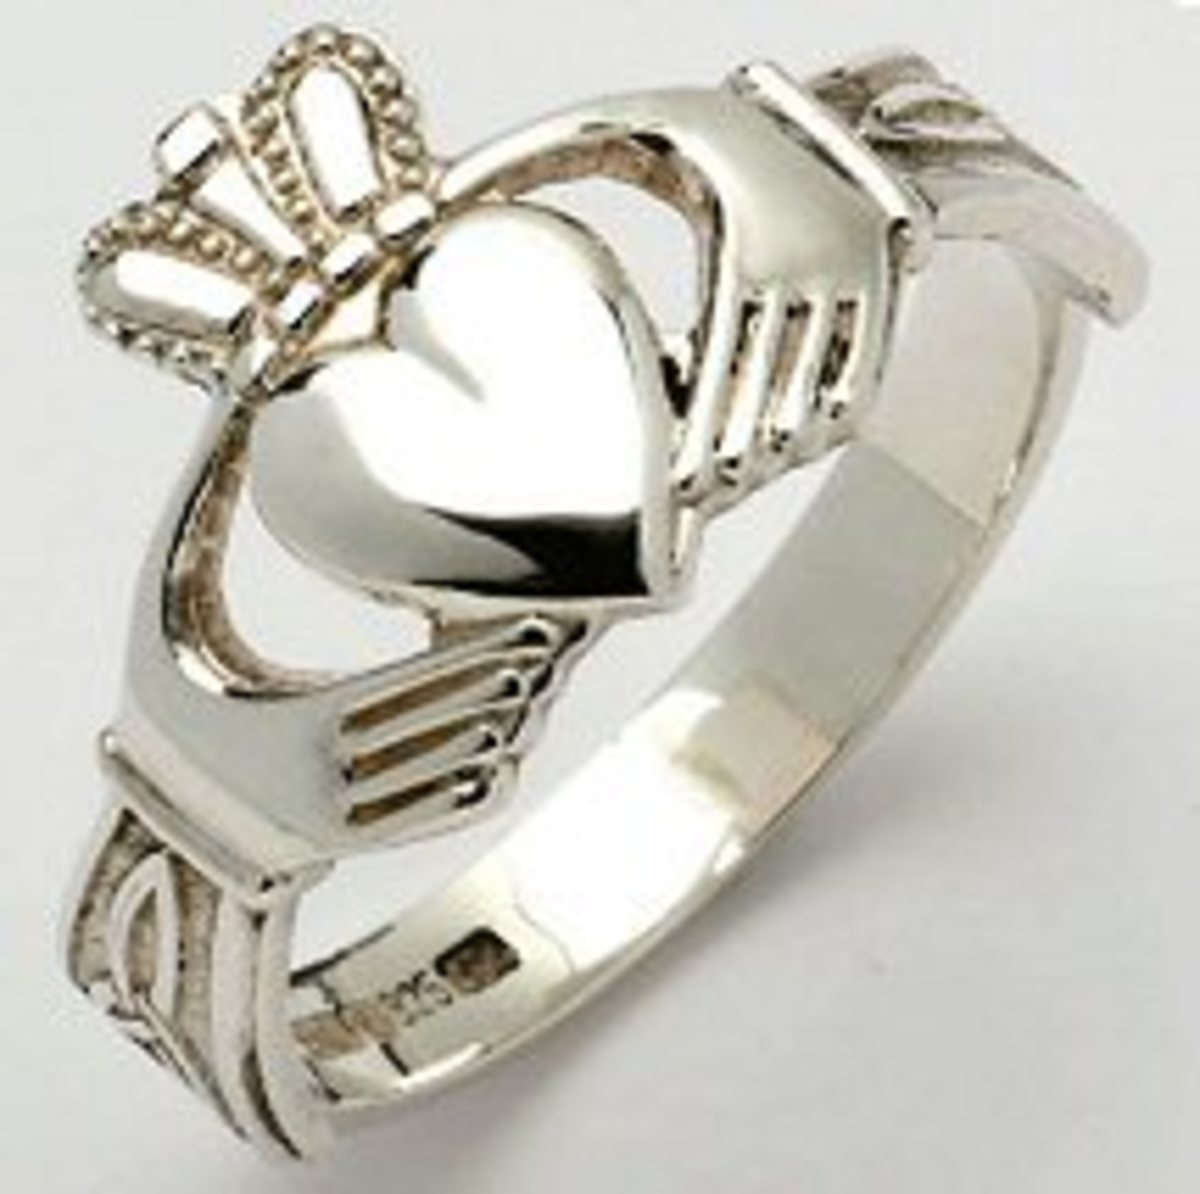 Claddagh rings represent friendship, love and loyalty